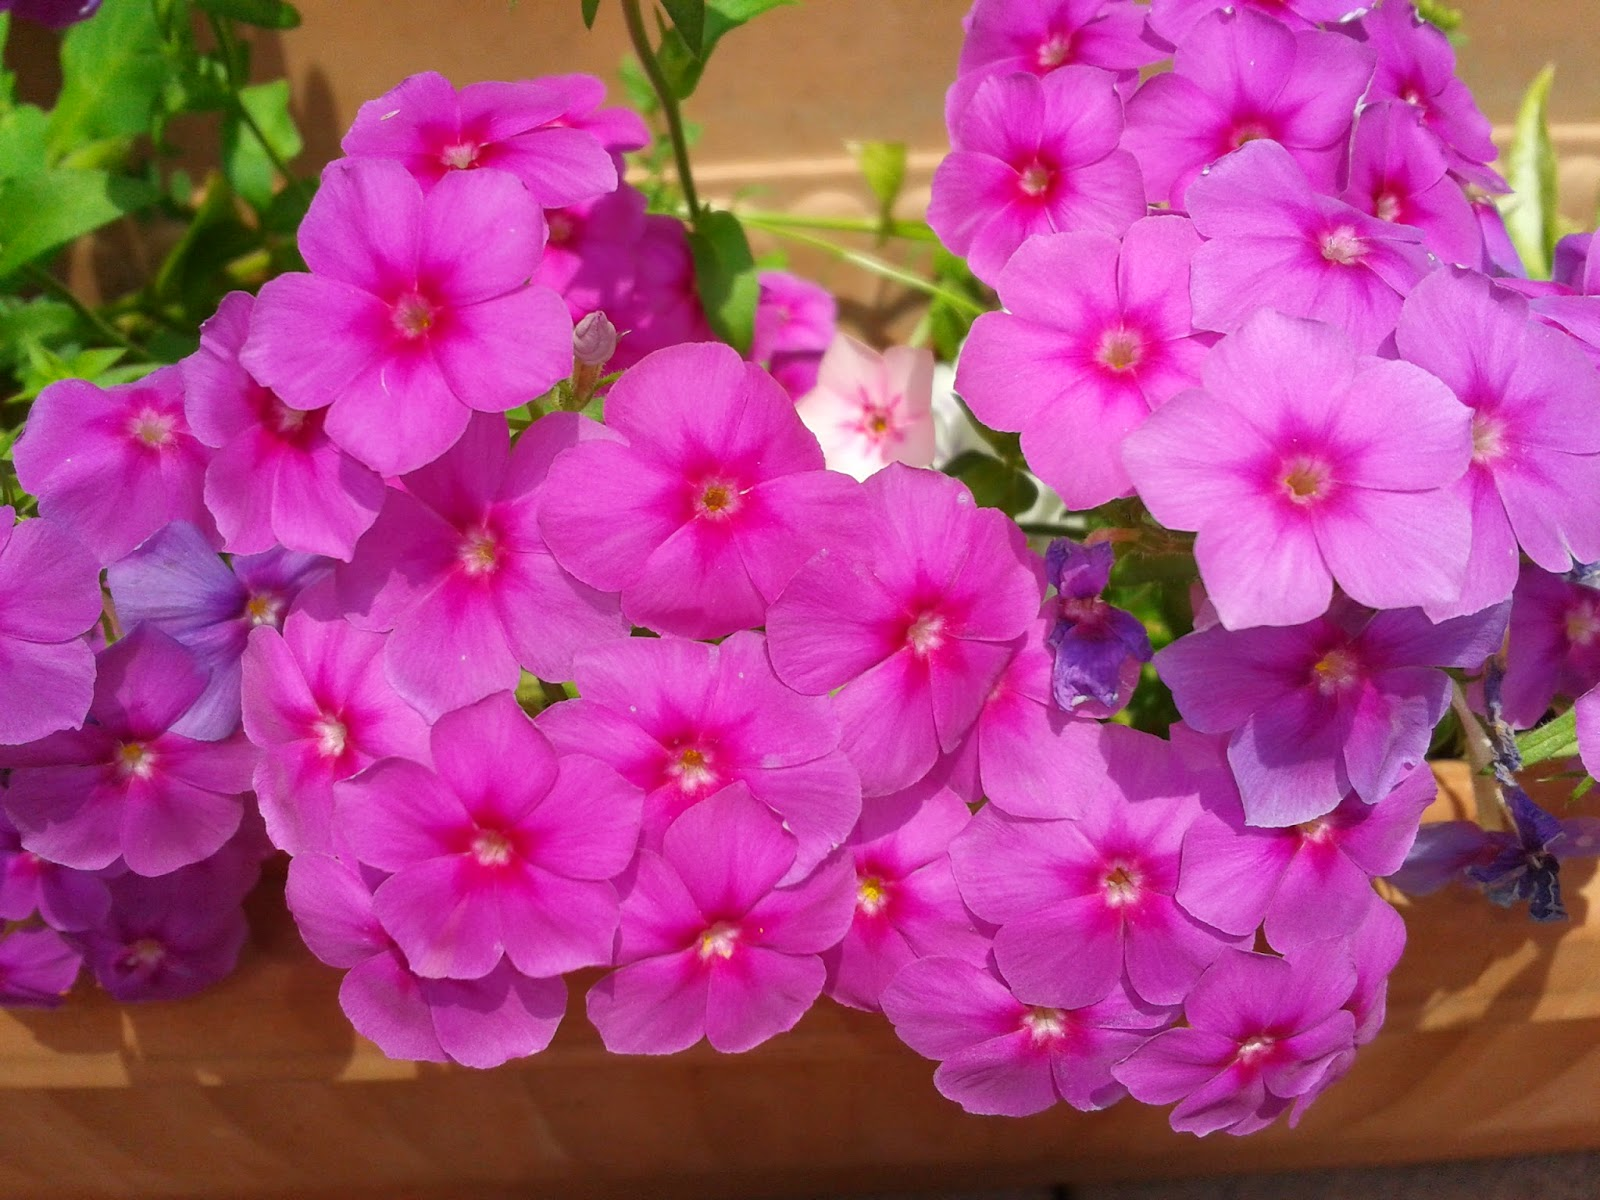 A Bunch Of Pink Phlox